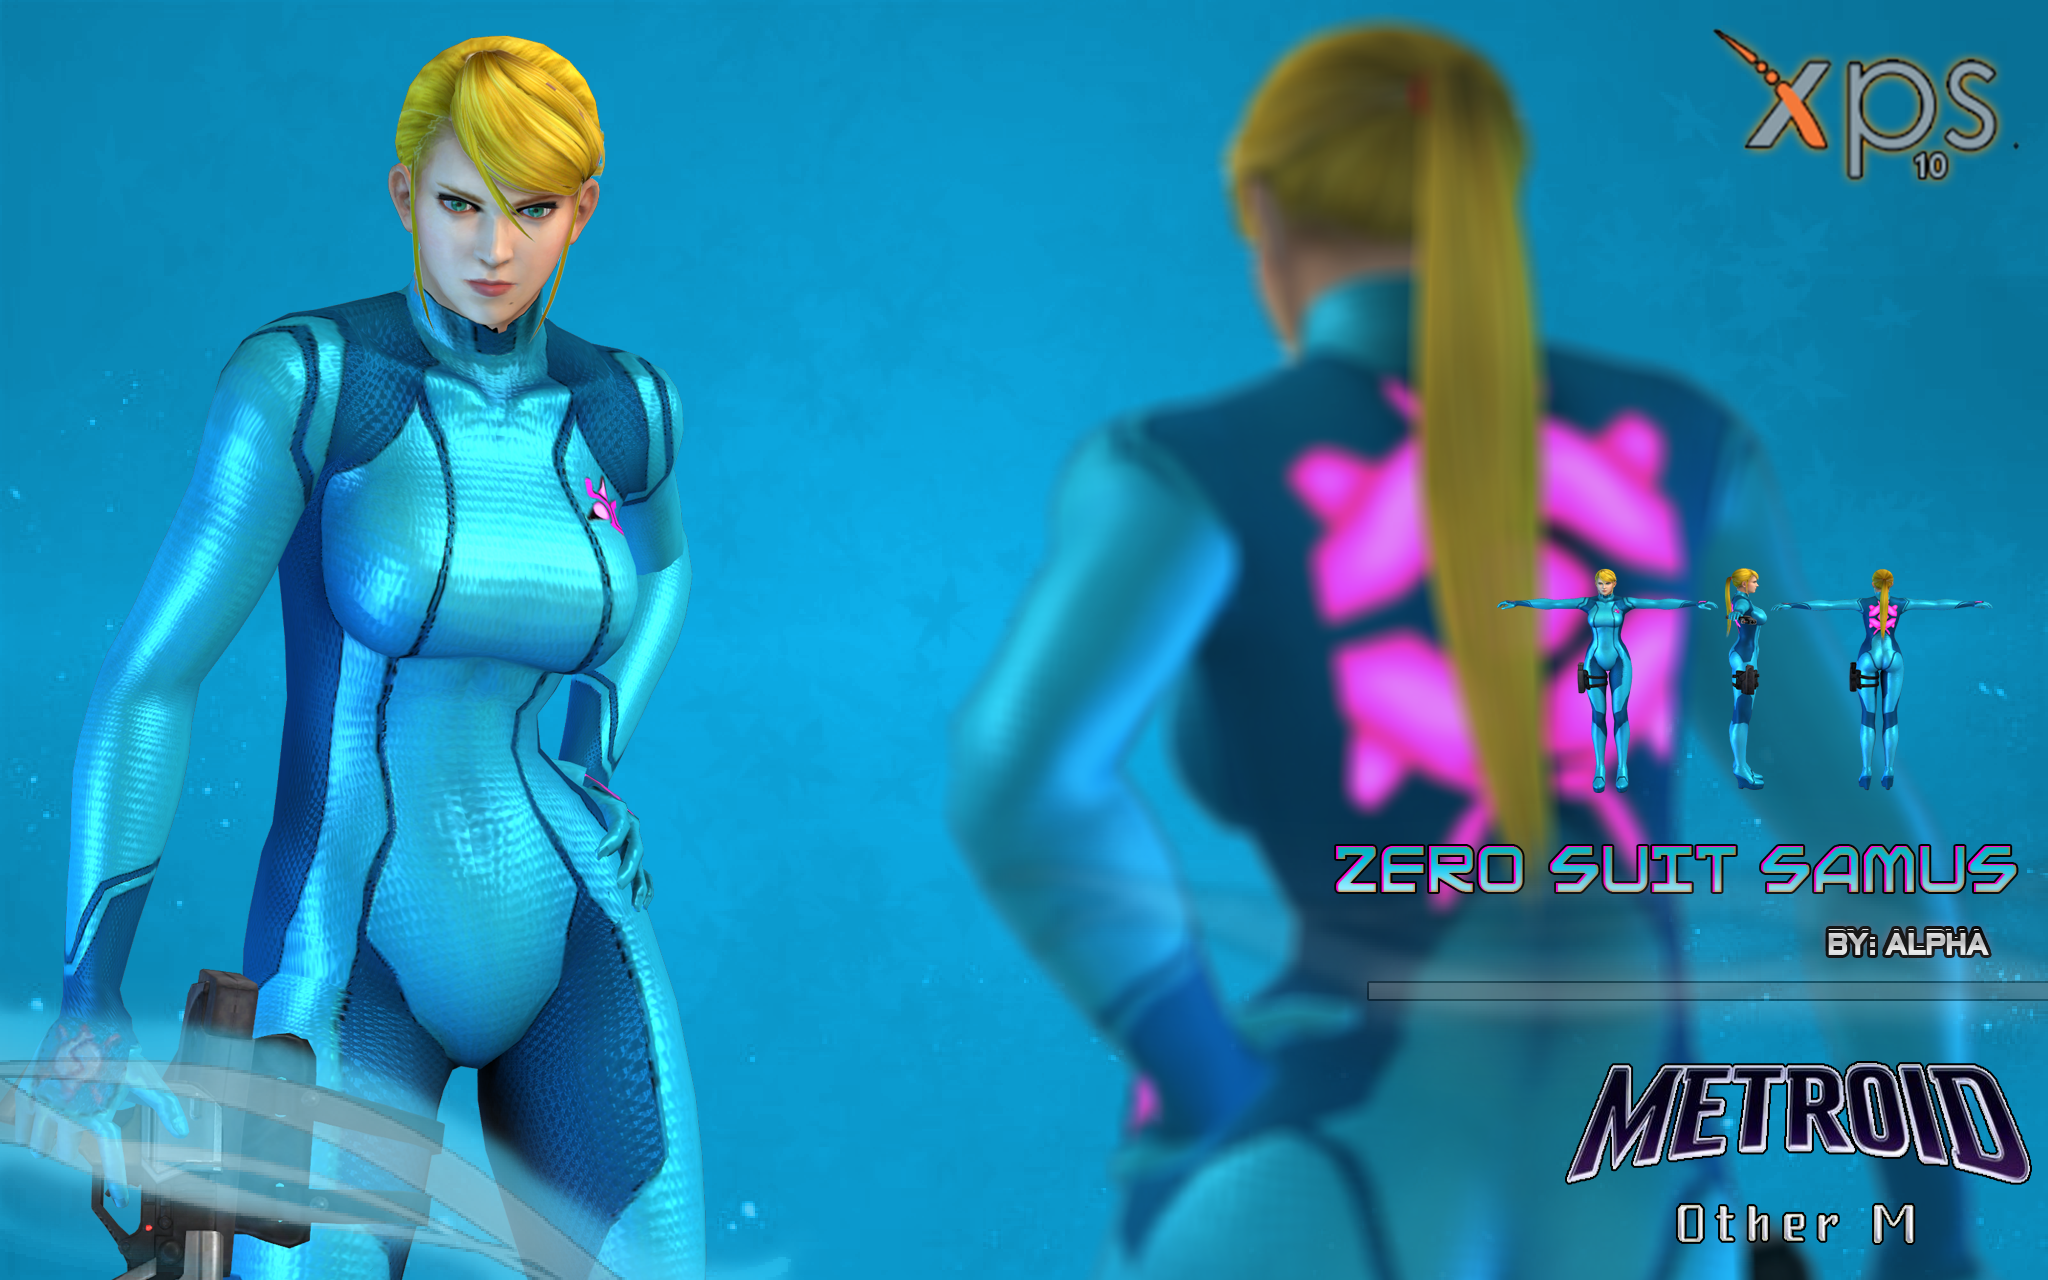 team ninja ruined samus design in this game metroid other m